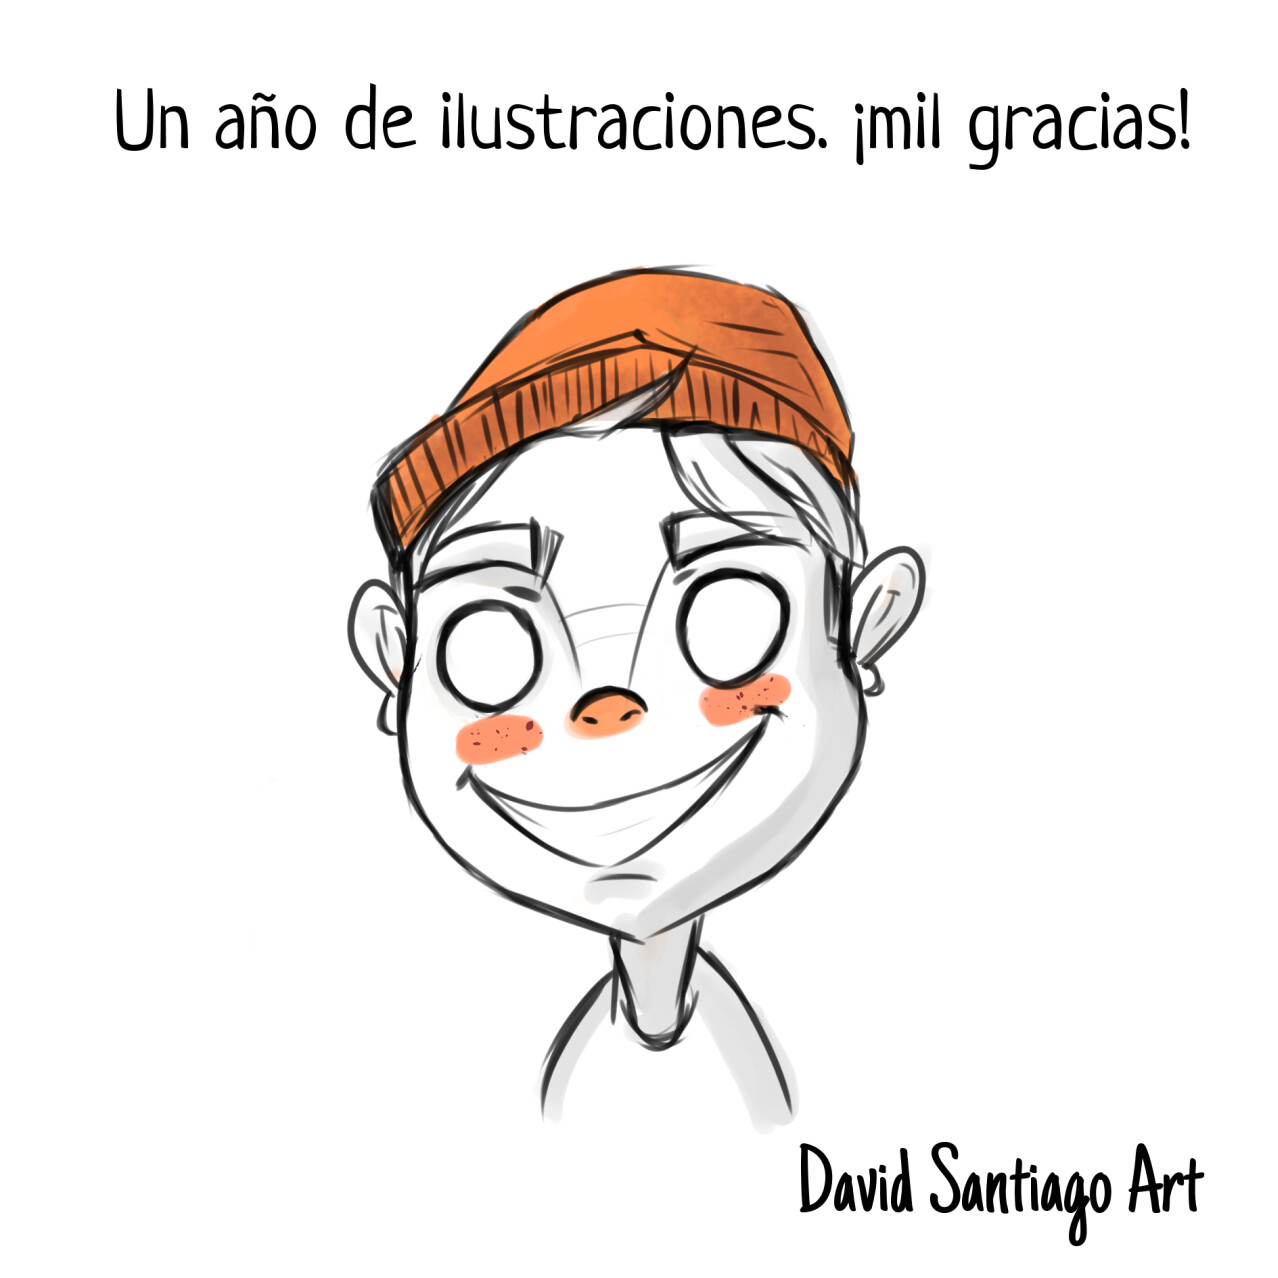 David santiago final ano de ilu